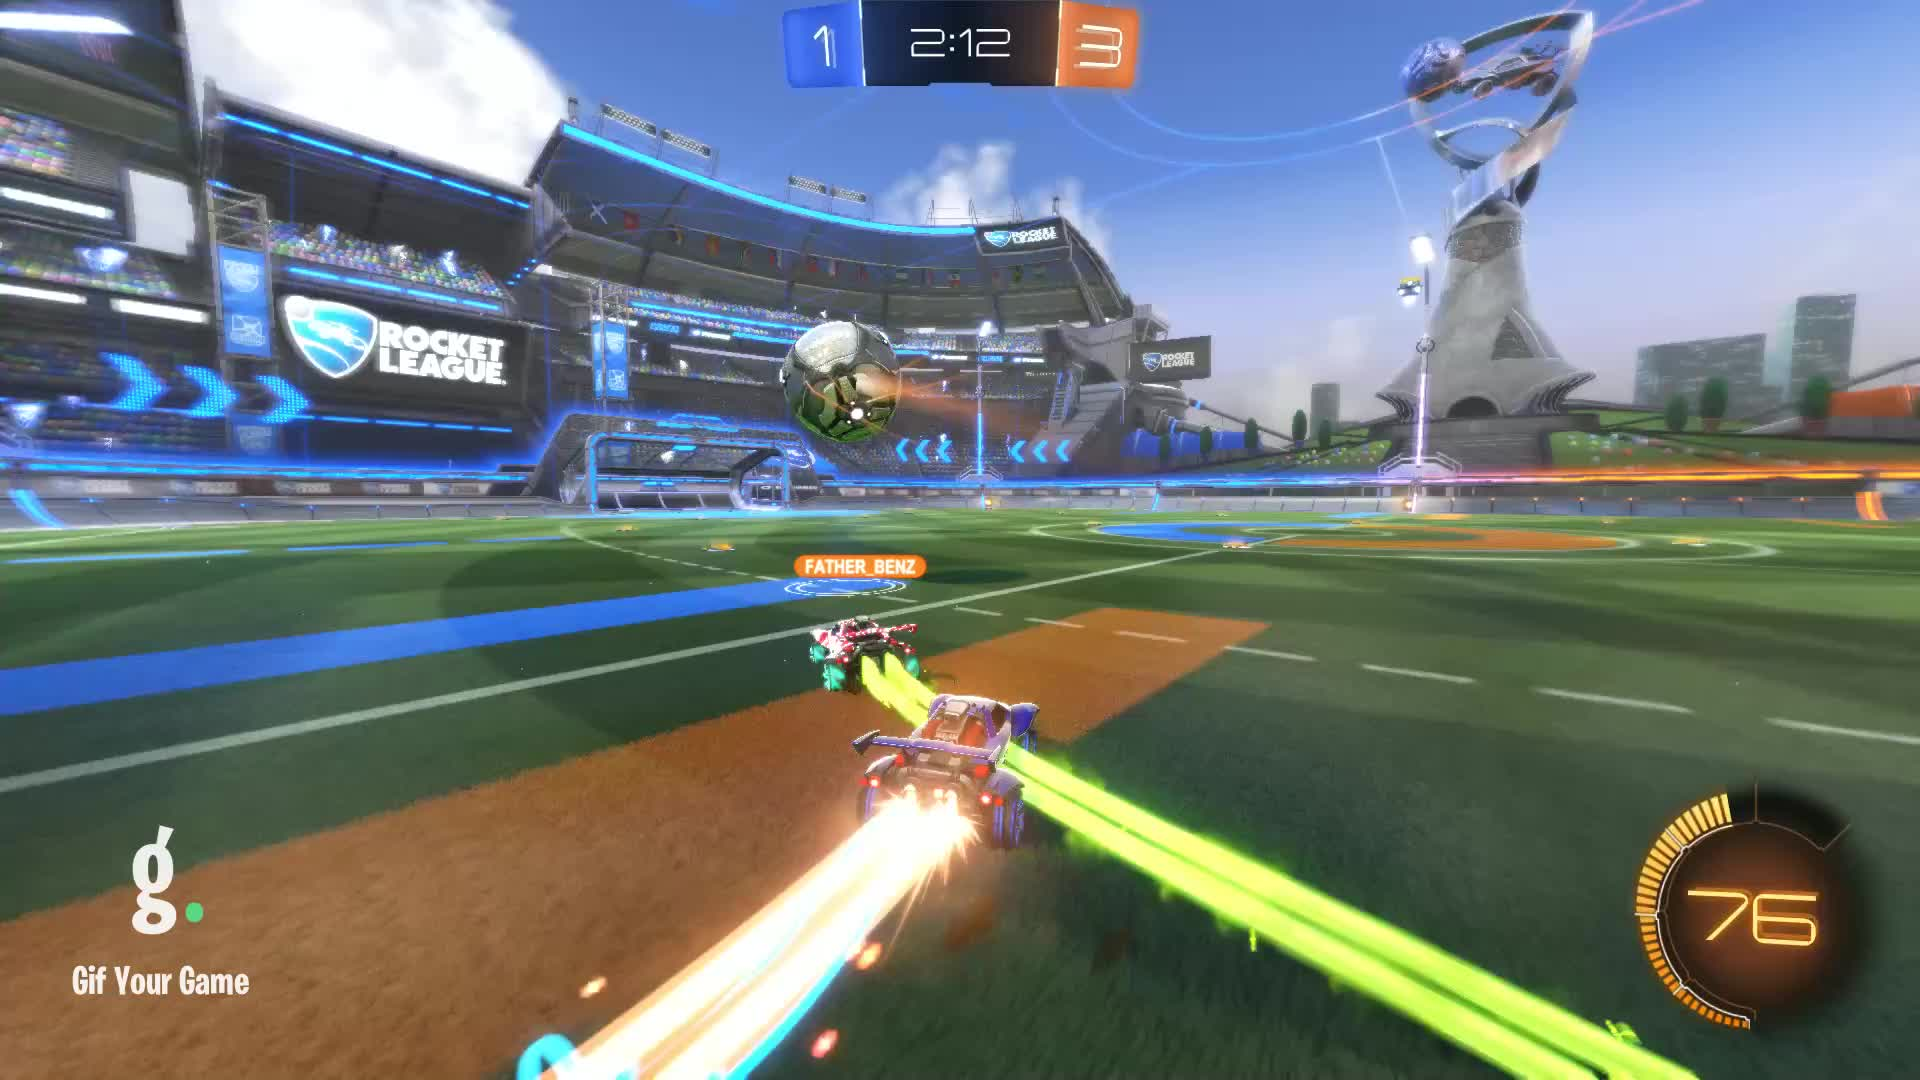 BRCamy, Gif Your Game, GifYourGame, Rocket League, RocketLeague, Save, Save 3: BRCamy GIFs